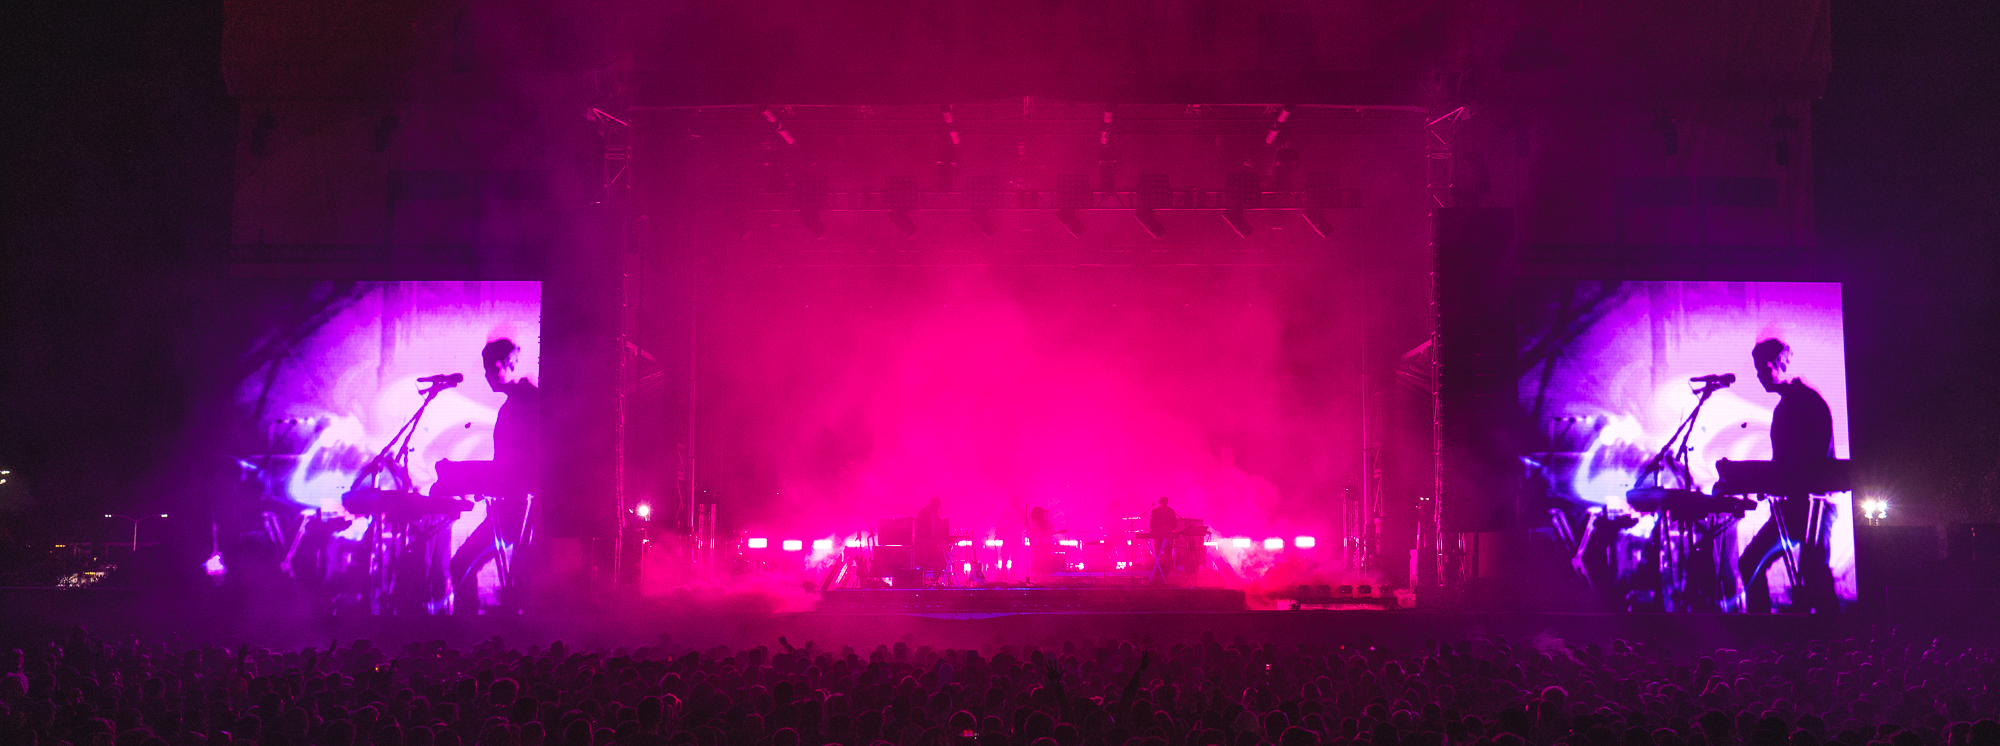 media programming/notch content   Tame impala 2018 tour  View Project